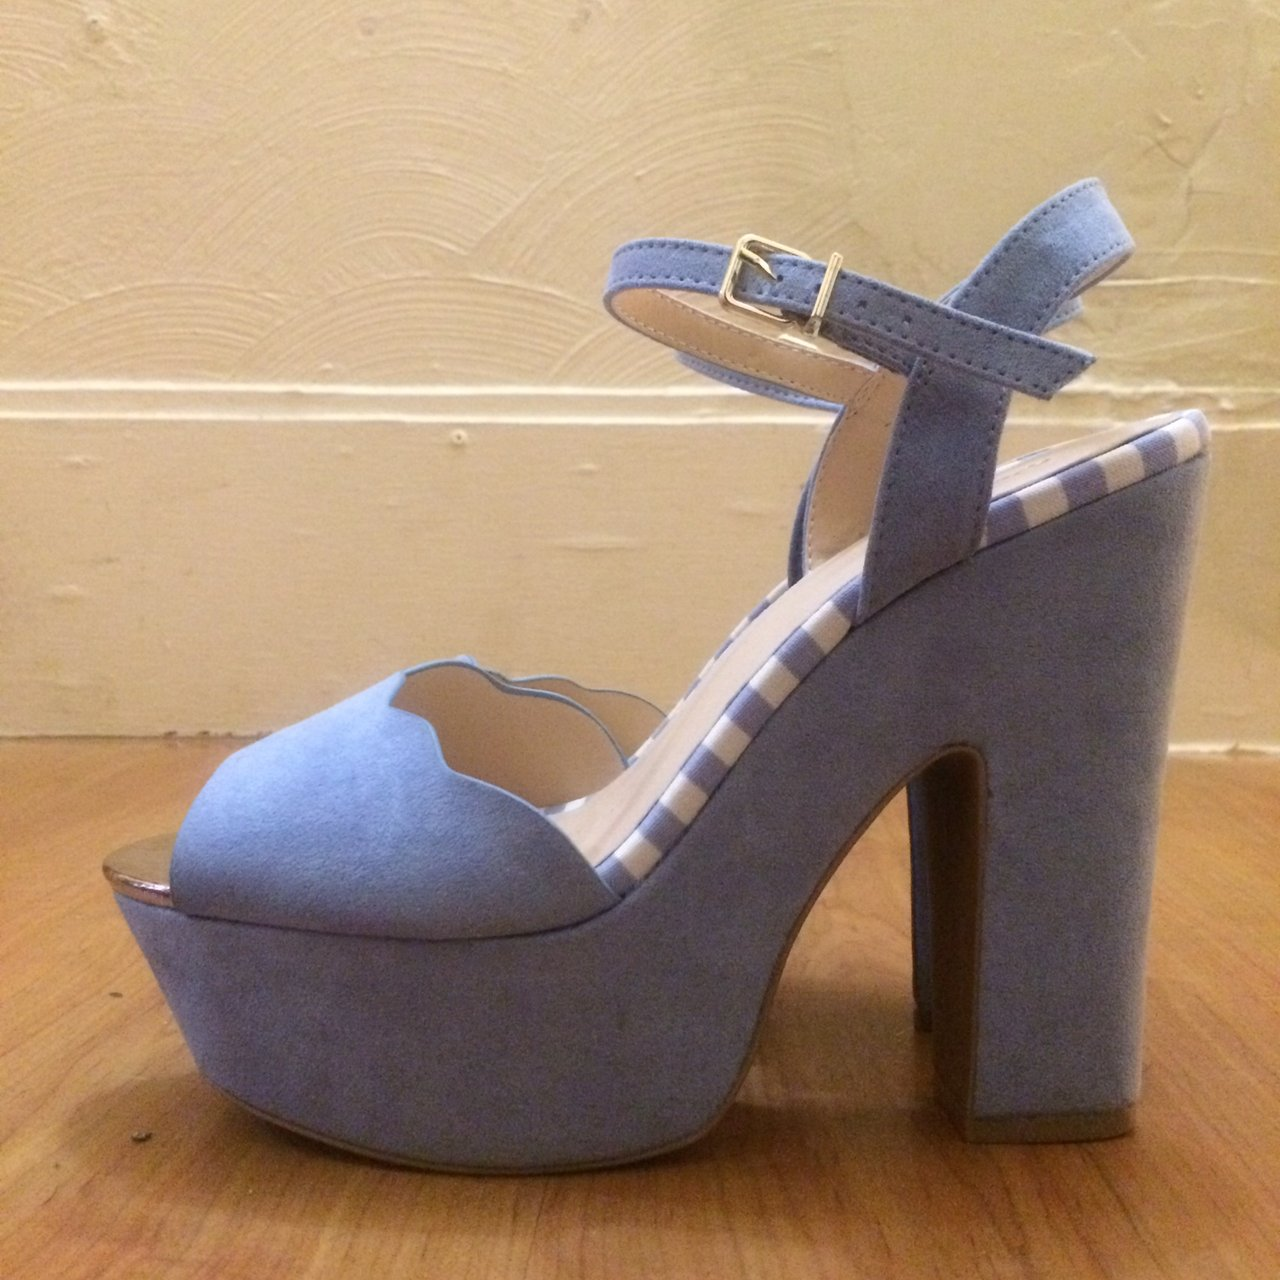 dfe545aee94 🌻POWDER BLUE SUEDE PLATFORM HEELS!🌻They are brand new and - Depop